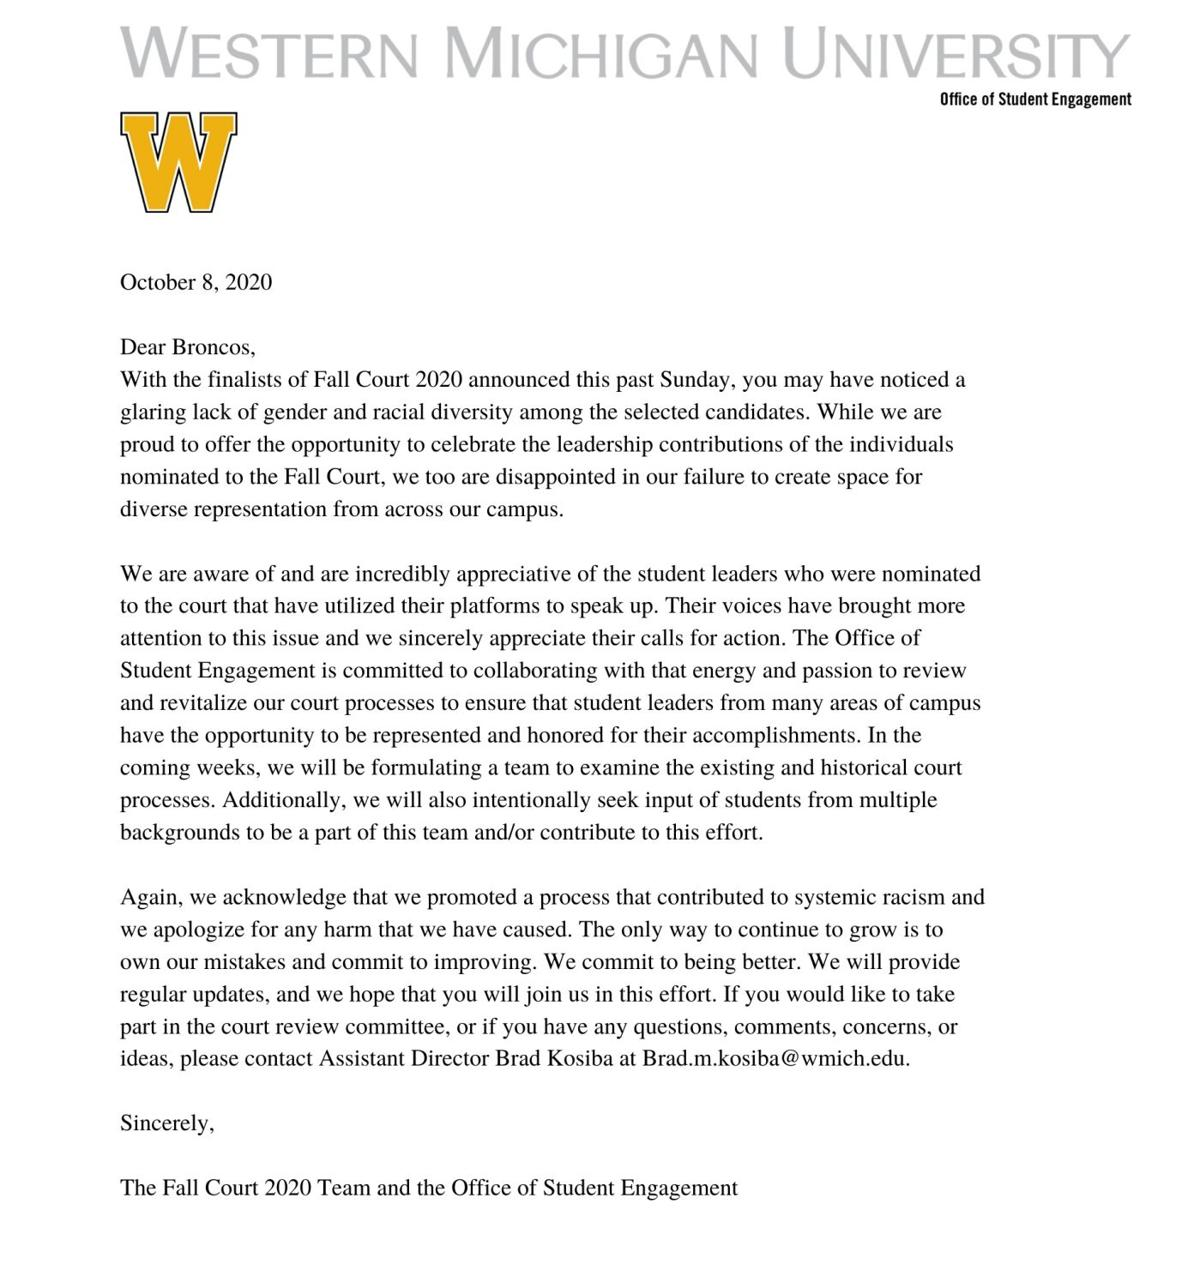 OSE 2020 Fall Court Statement